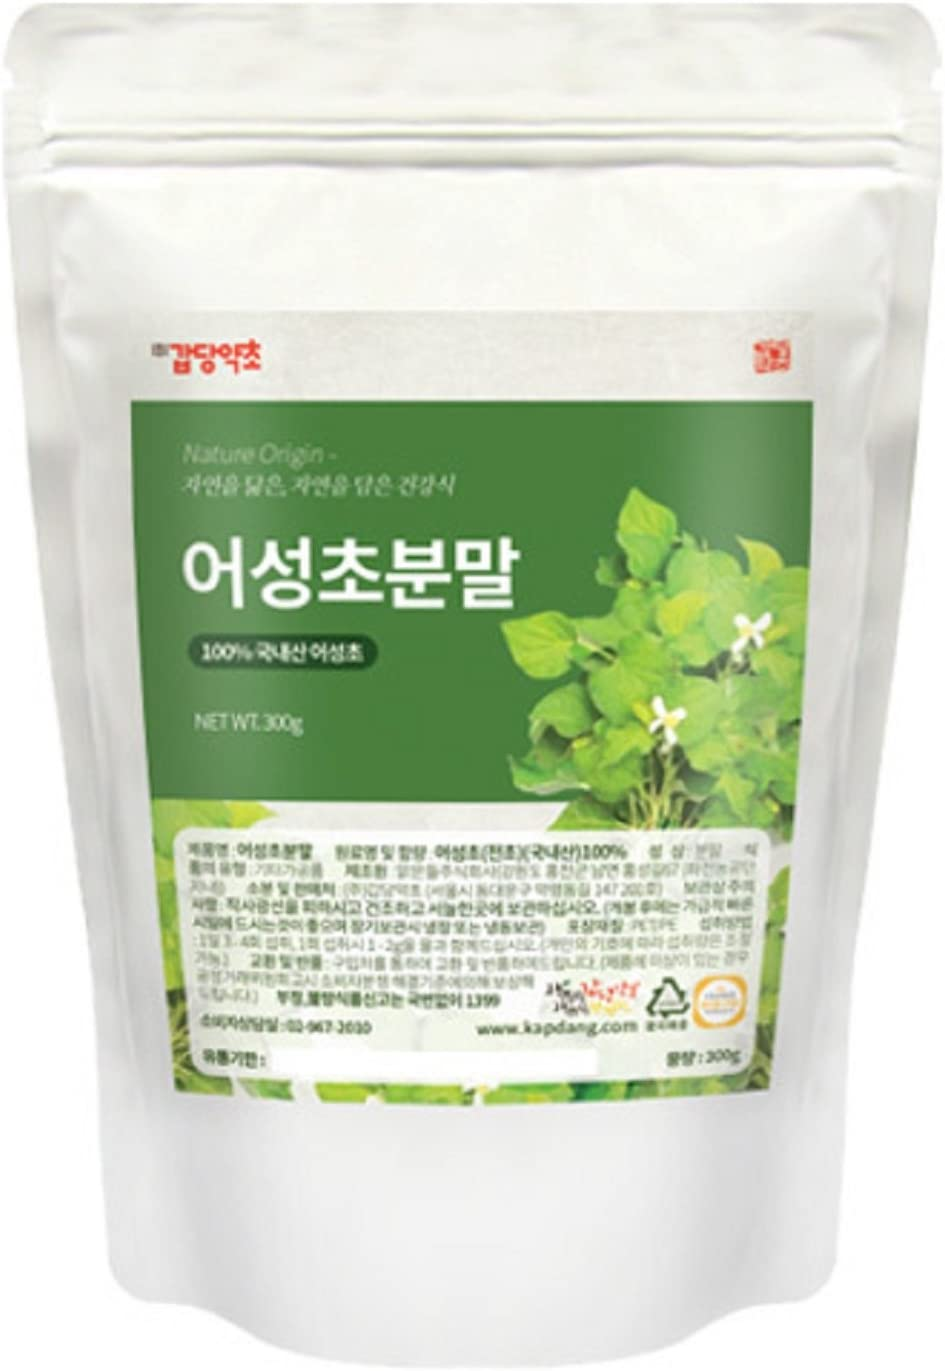 Houttuynia Cordata Powder Origin Korea Houttuynia cordata Thunb Powder Natural 100 Health Tea 1 Pack 300g